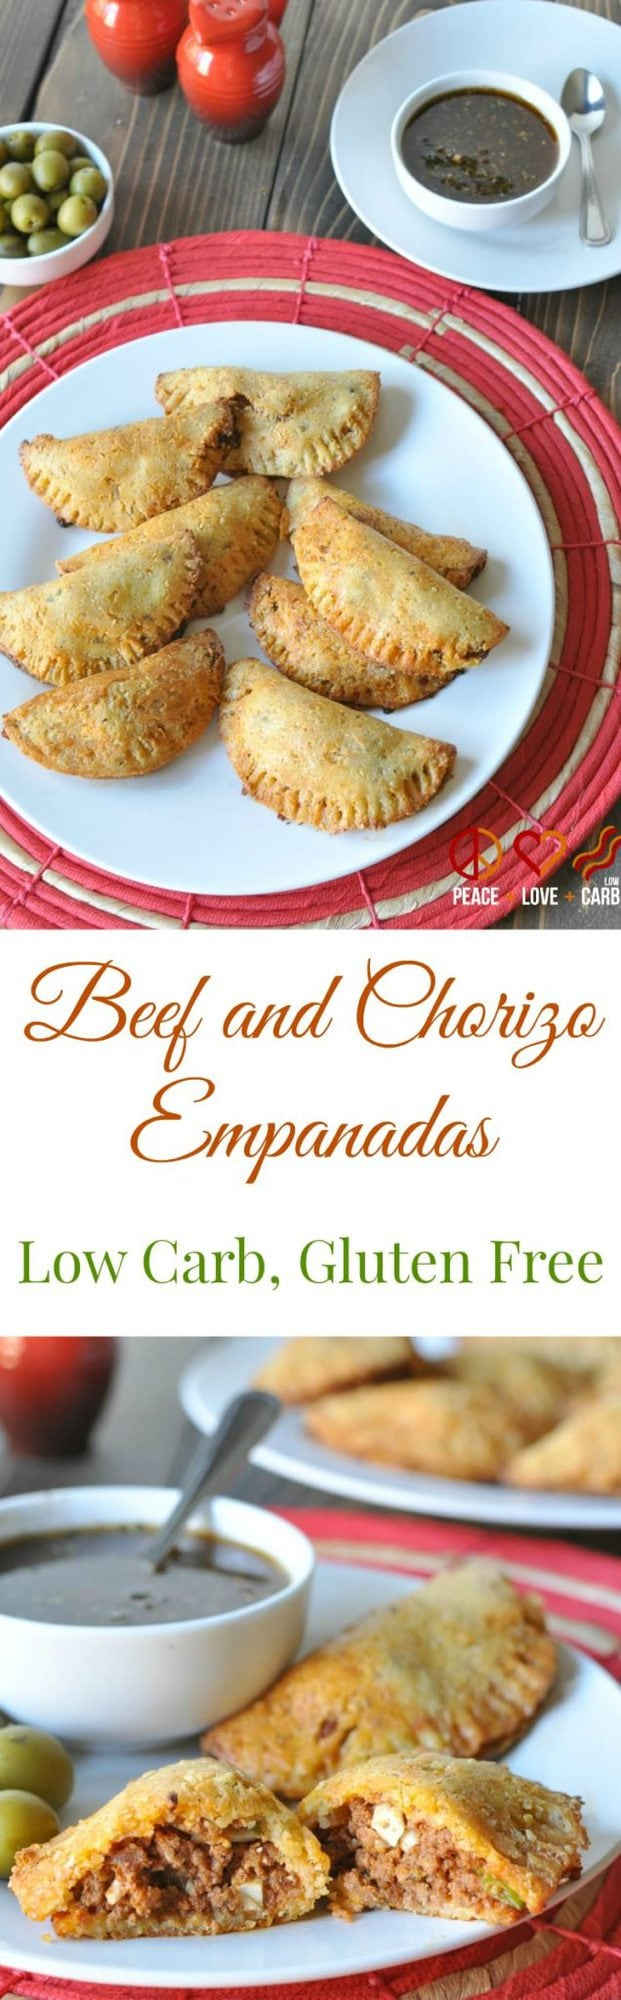 Beef and Chorizo Empanadas - Low Carb, Gluten Free Peace Love and Low Carb